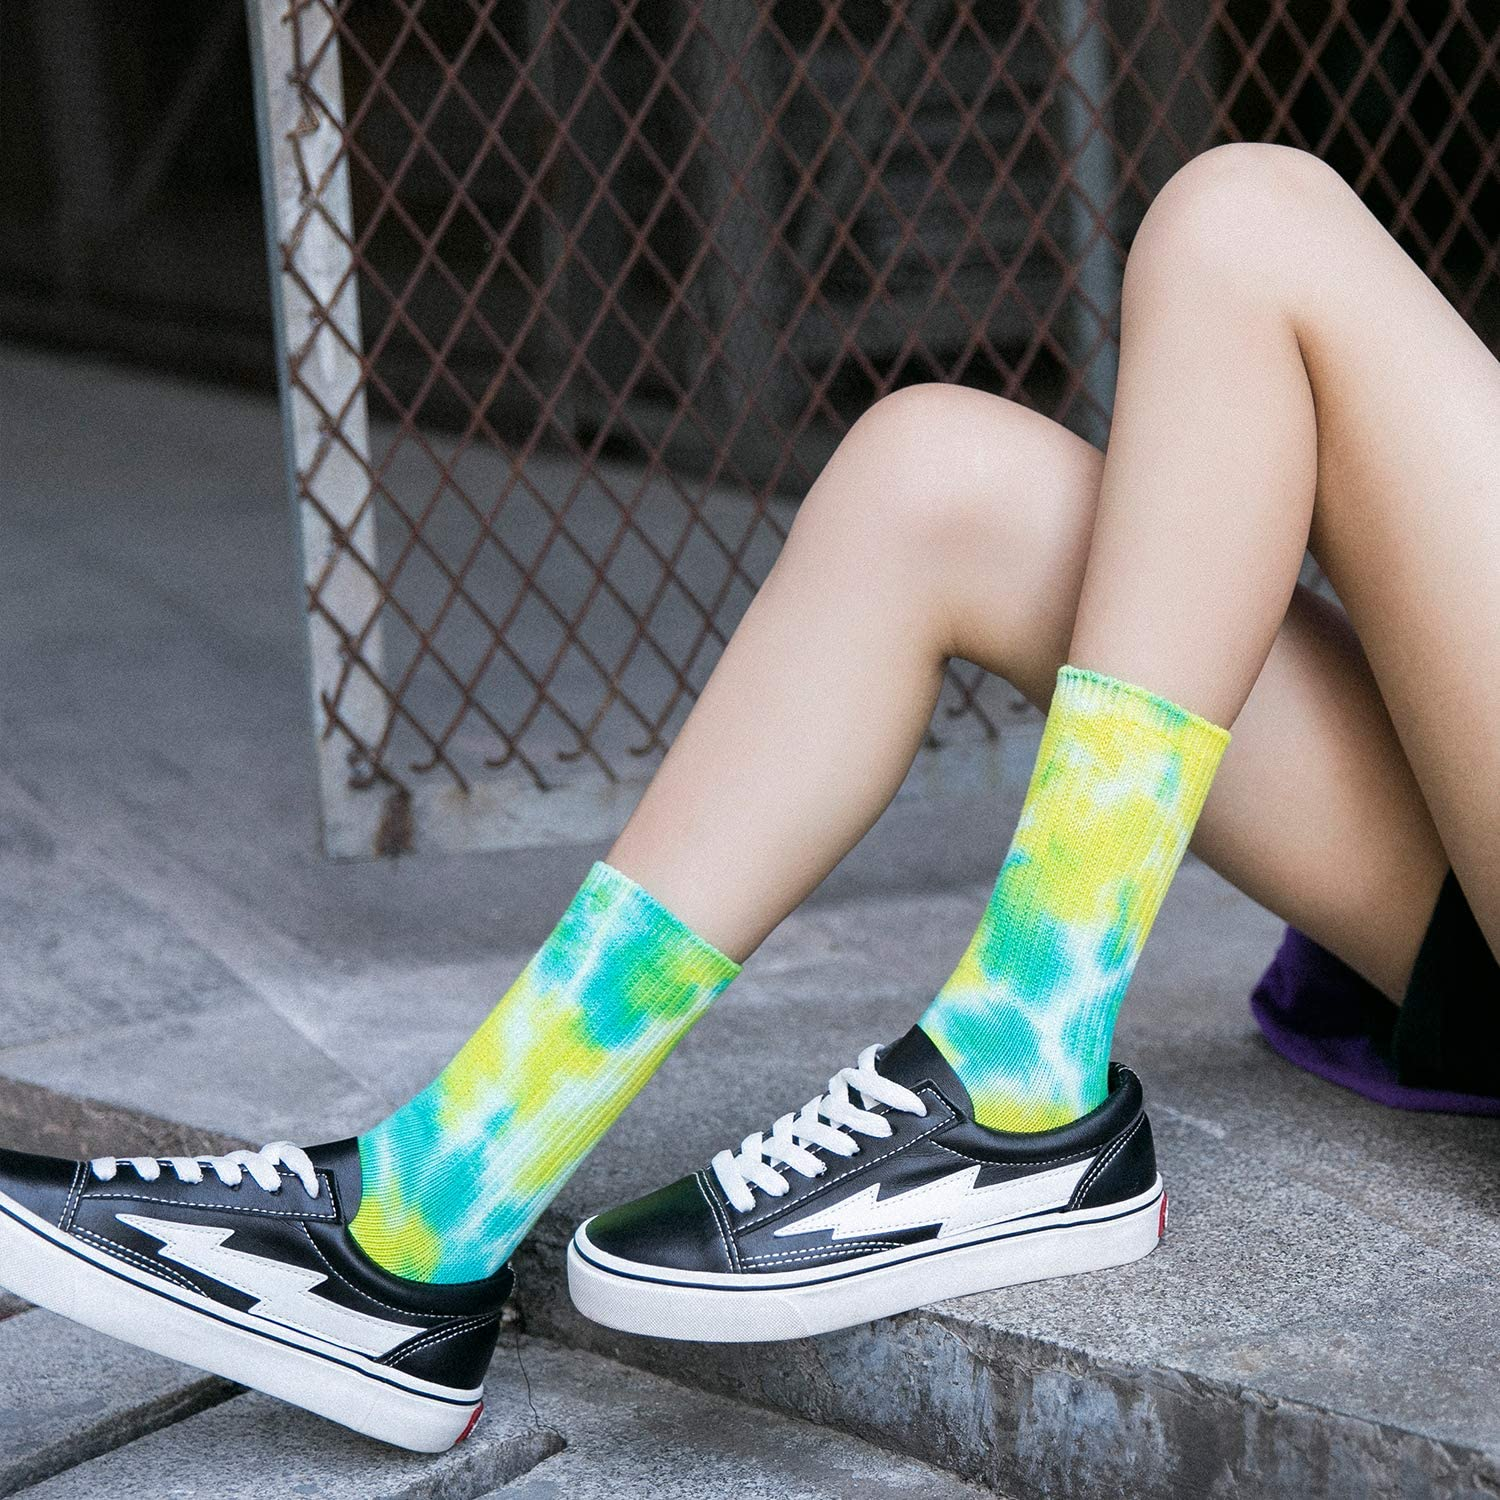 A Collection of Funny Novelty Fashion Colorful Cool Crazy Skateboard Tie Dye Crew Dress Socks 5 Pack//6 Pack DREAM SLIM